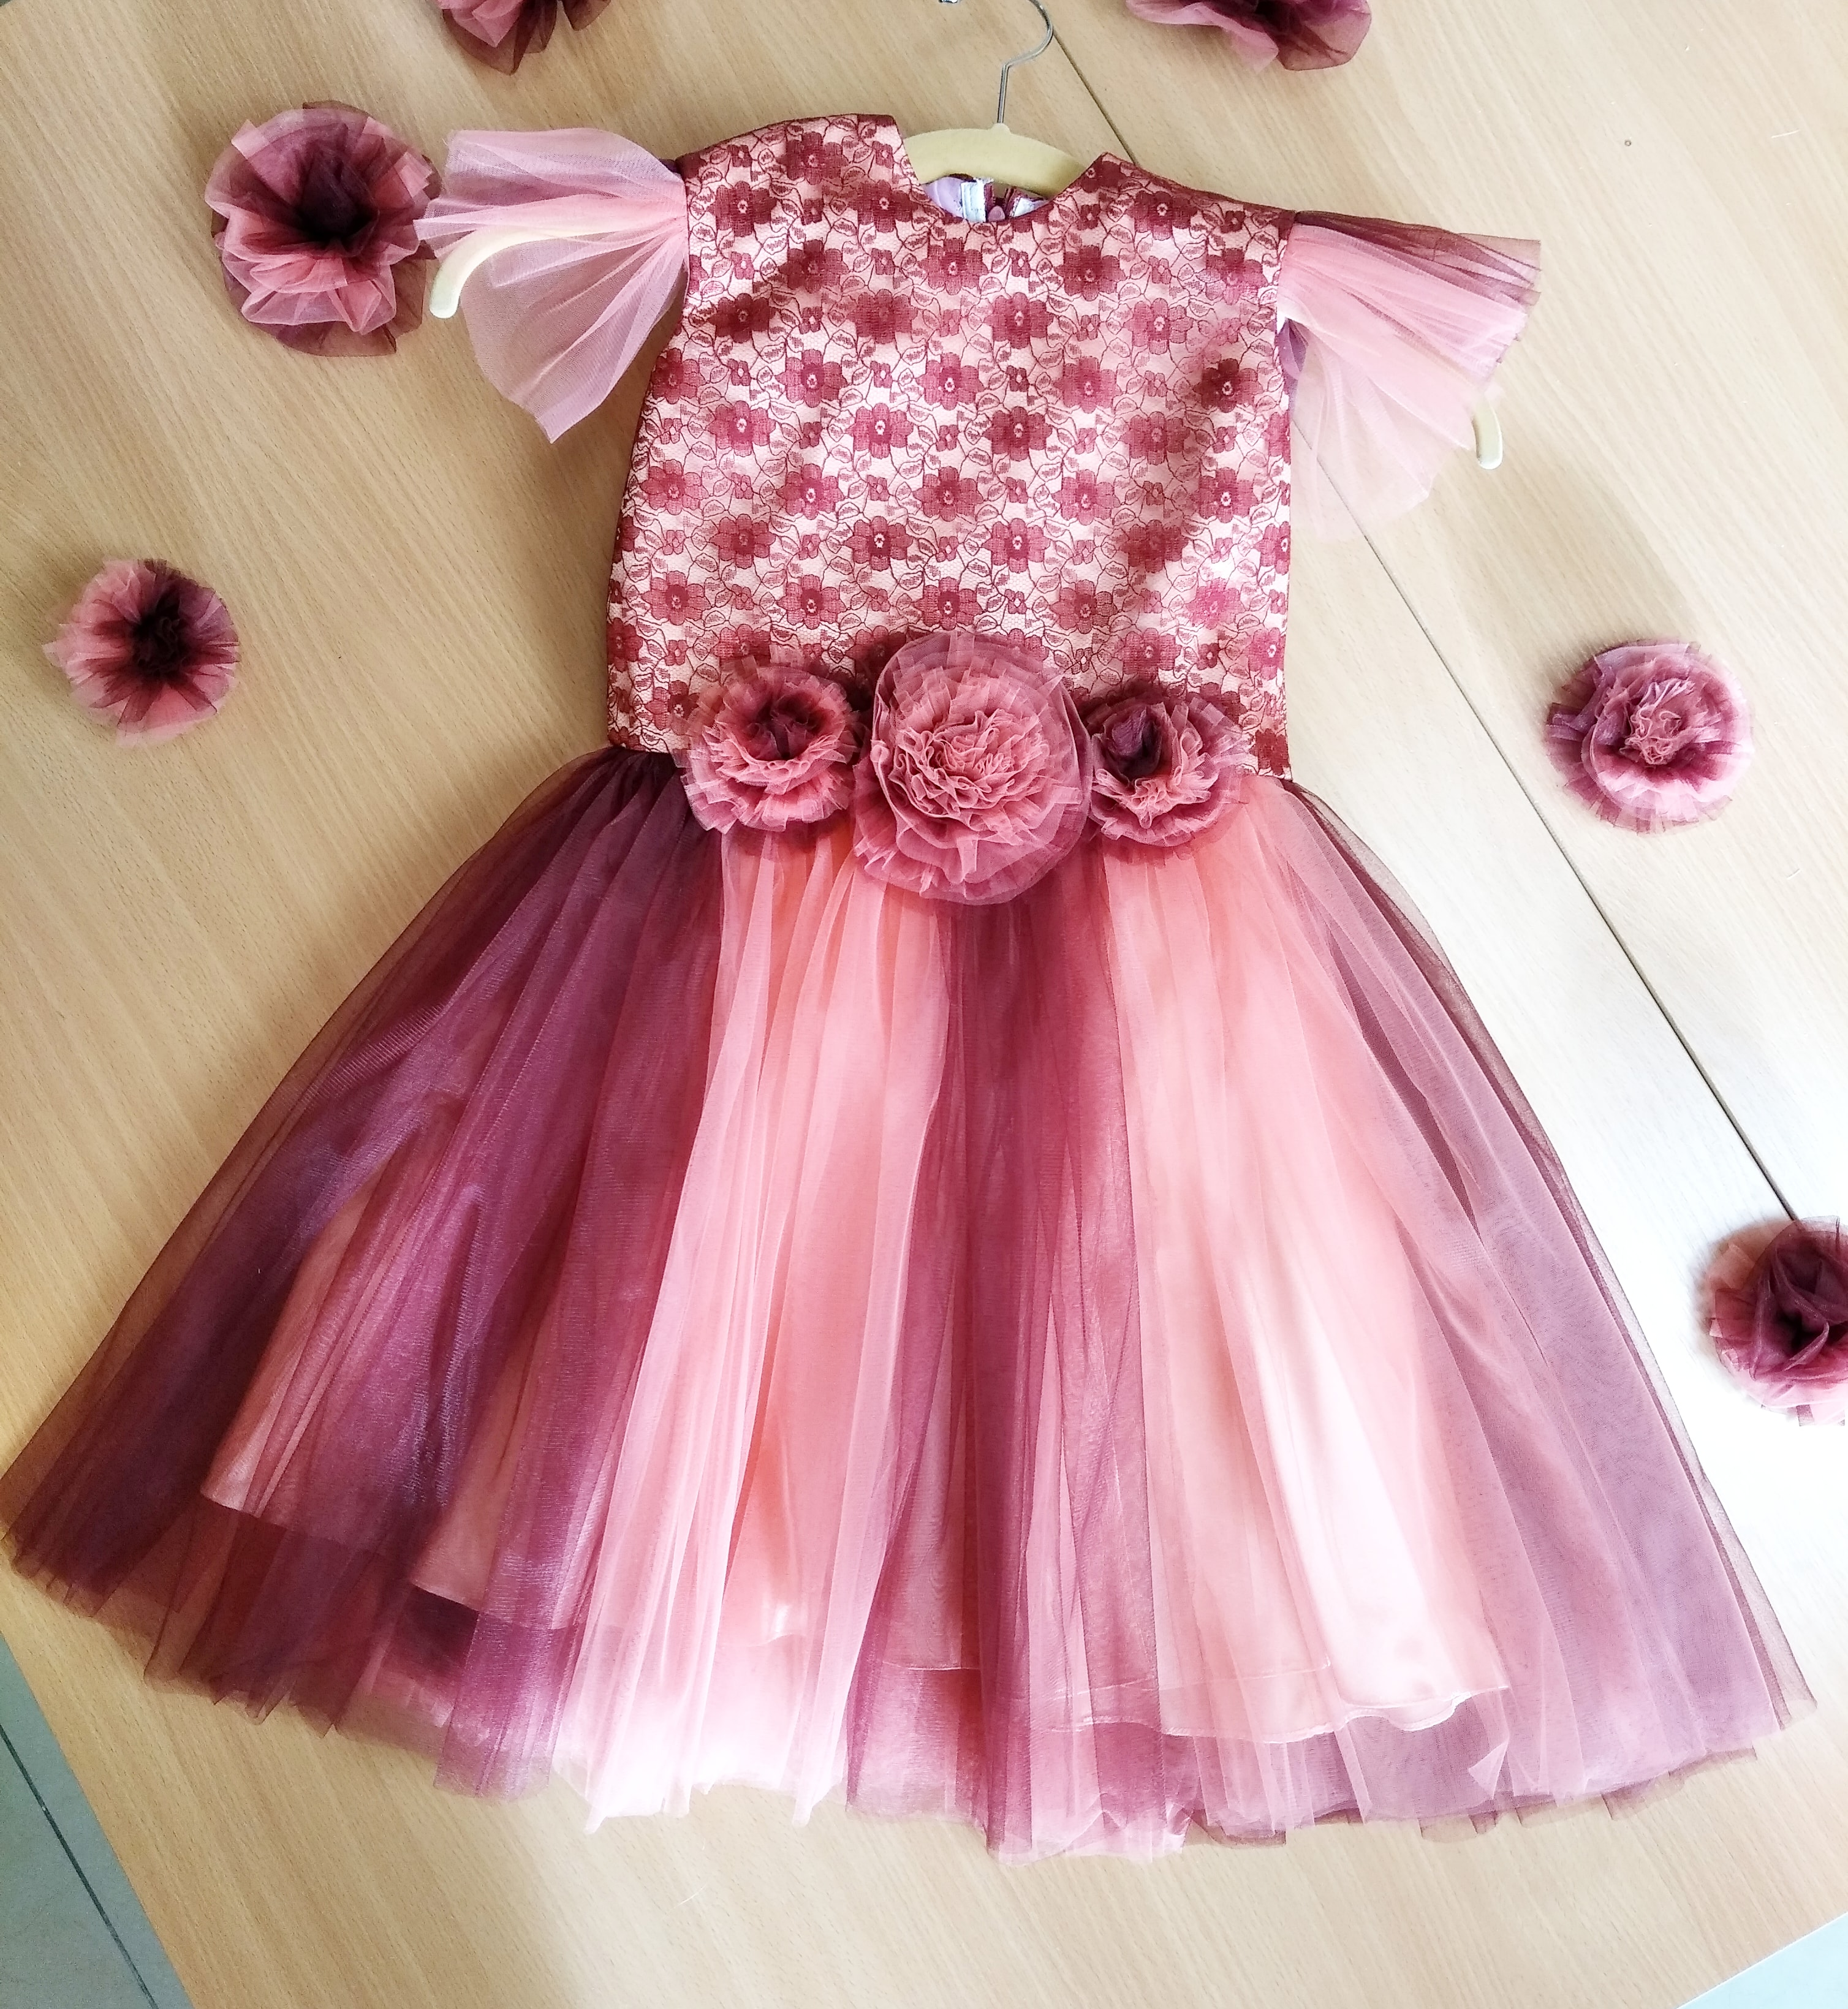 <p>PLease send&nbsp;a price catalog of dress and blouse fabrics - Armani silk, chiffon, viscose, velvet stretch, satin, tulle and other similar fabrics. Lace and accessories for dresses, blouses.</p>  <p>delivery conditions in Kaliningrad, Russia.</p>